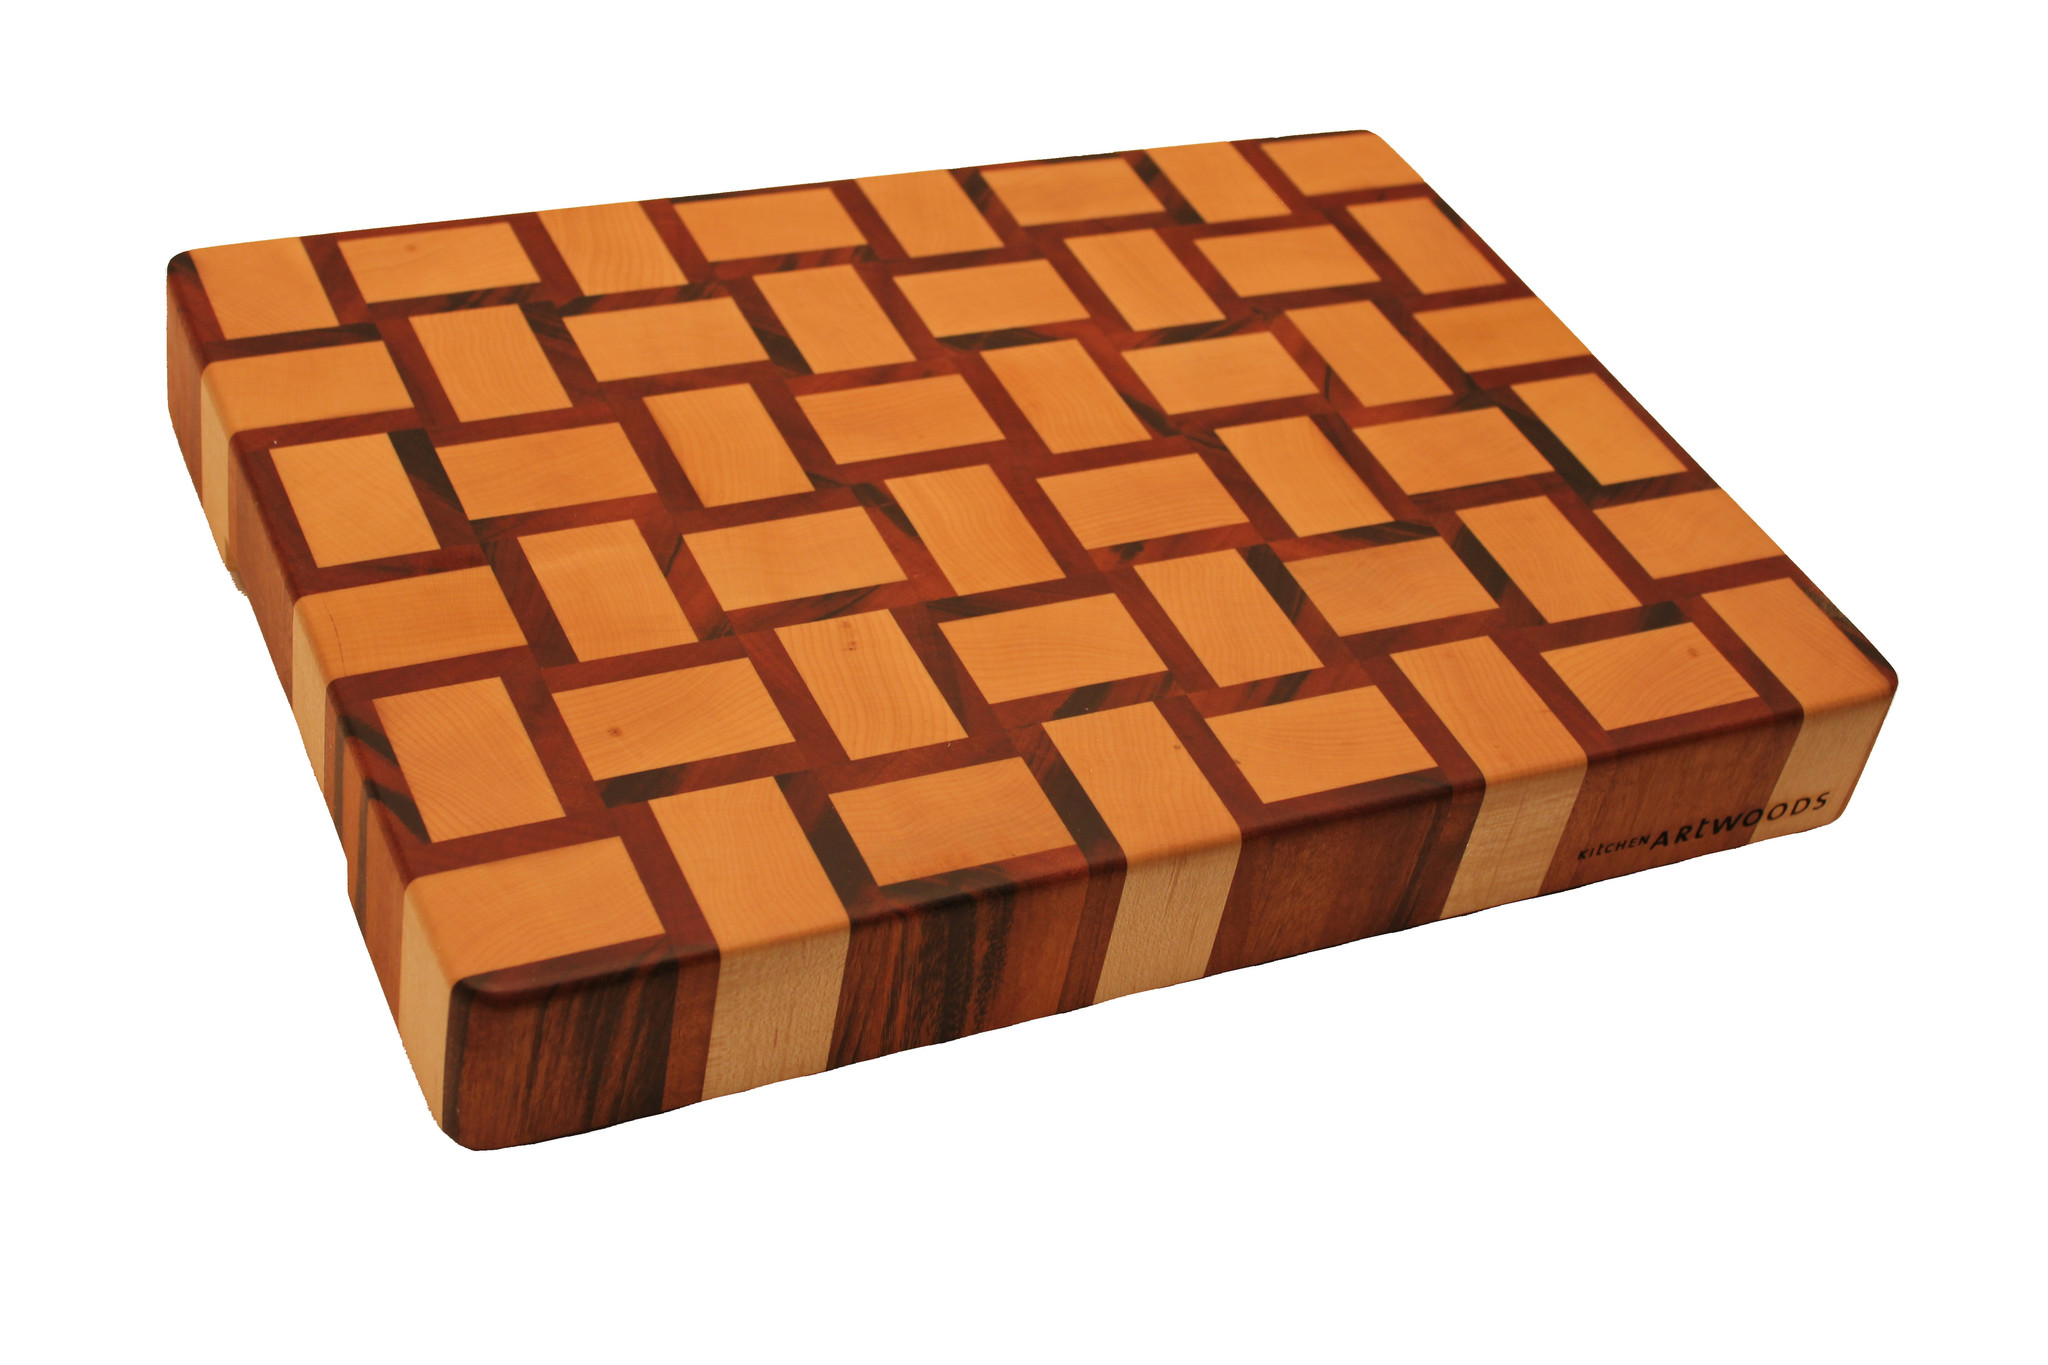 end grain cuttingboard with a woven patern of hard maple and tigerwood